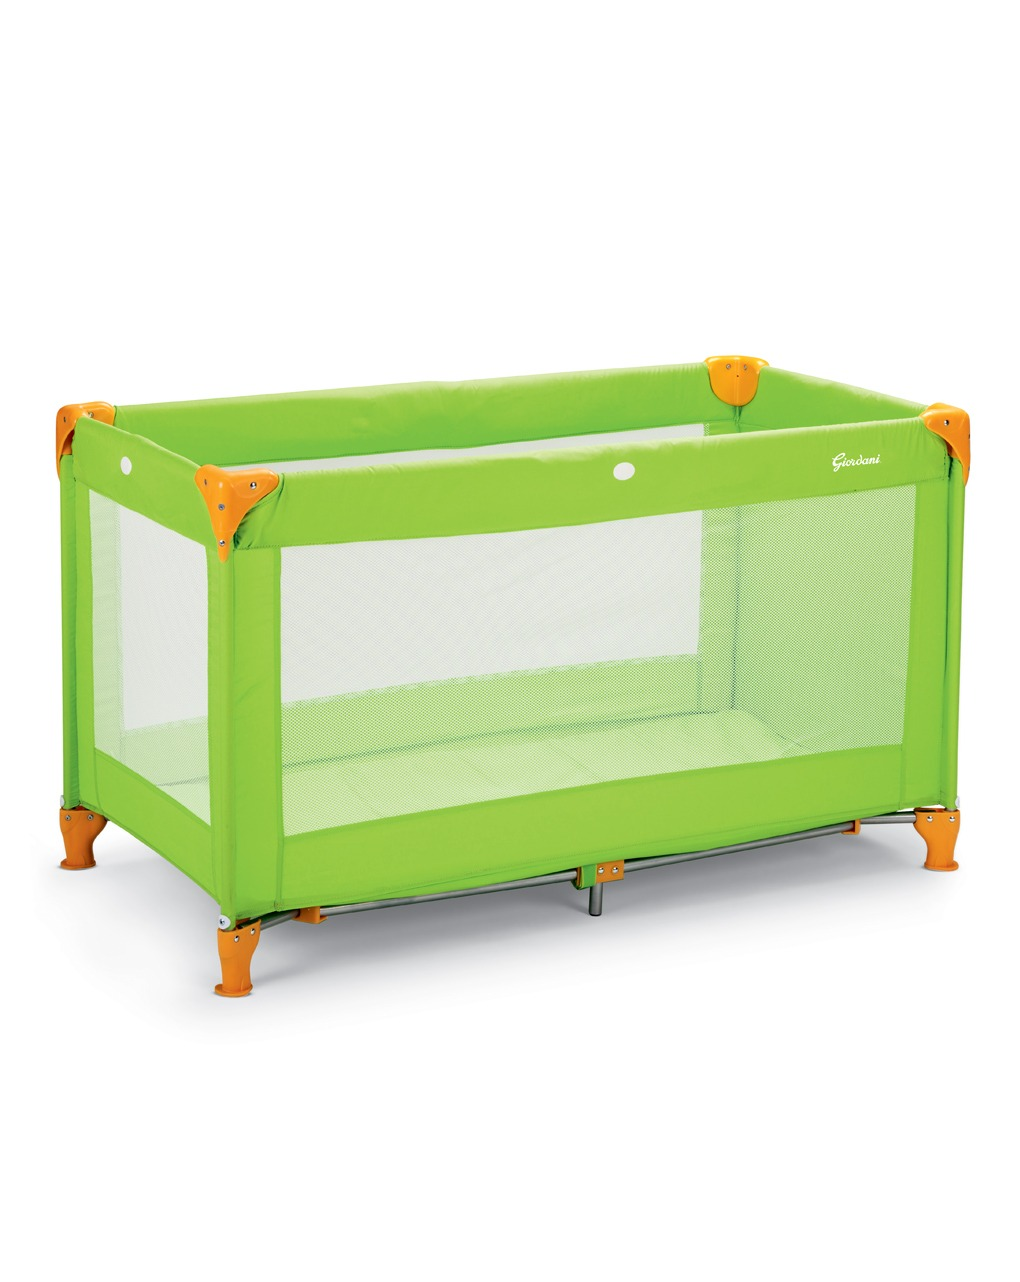 Rent light portable cot Palermo